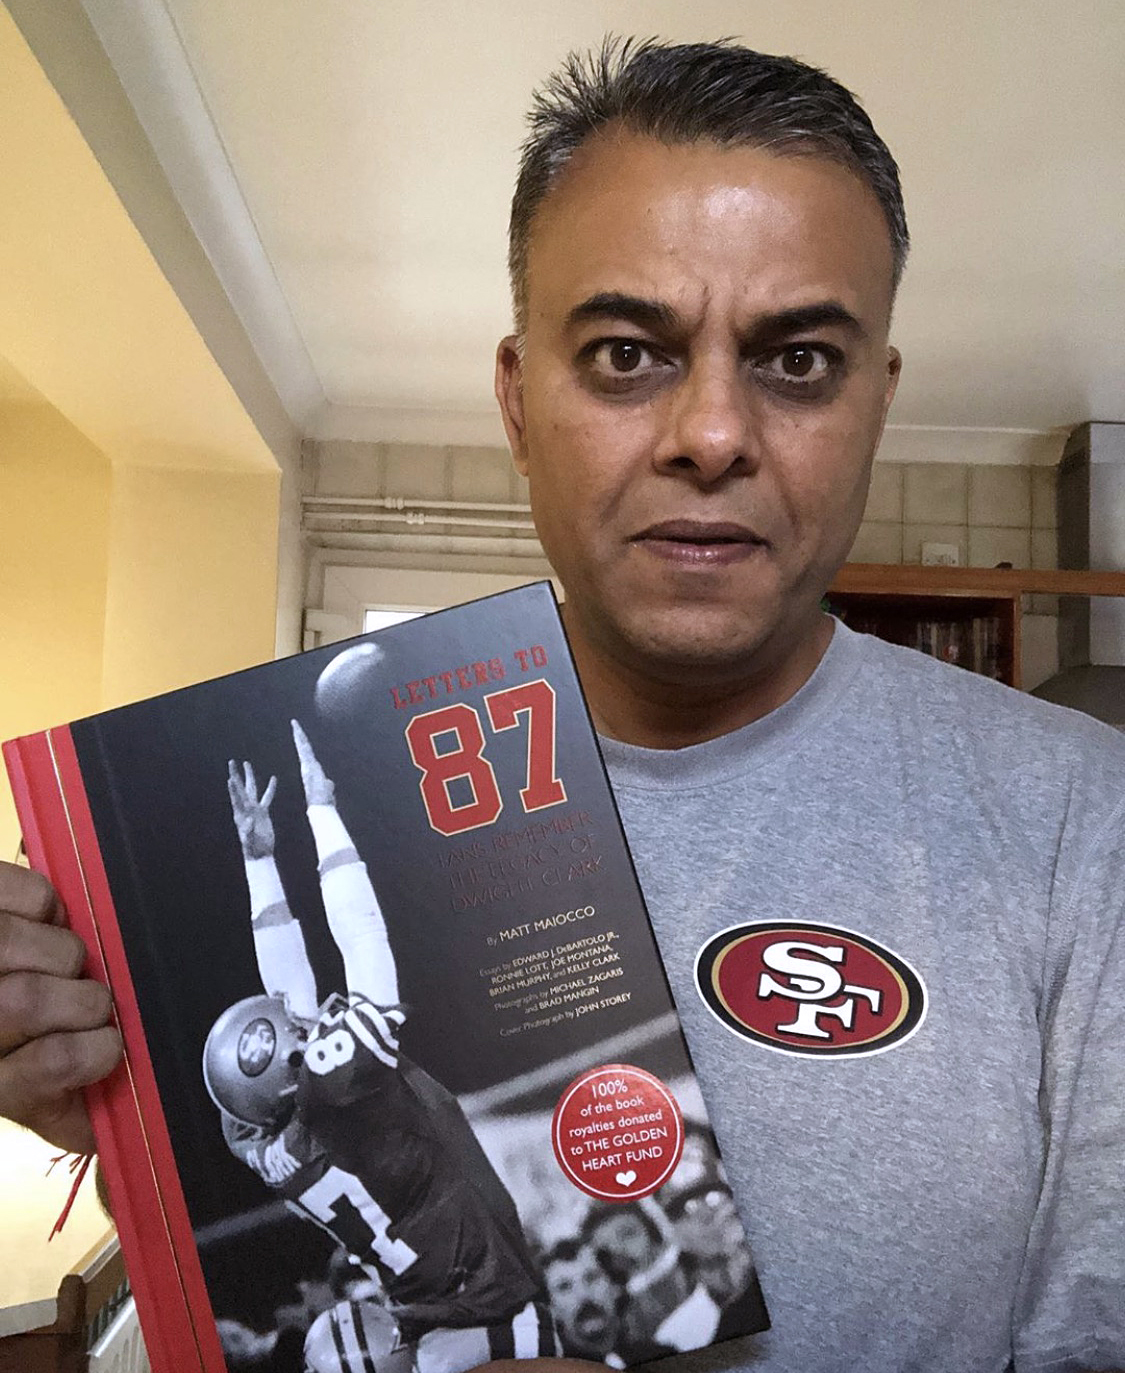 dipak_gohil - My copy of #lettersto87 arrived in the UK today.